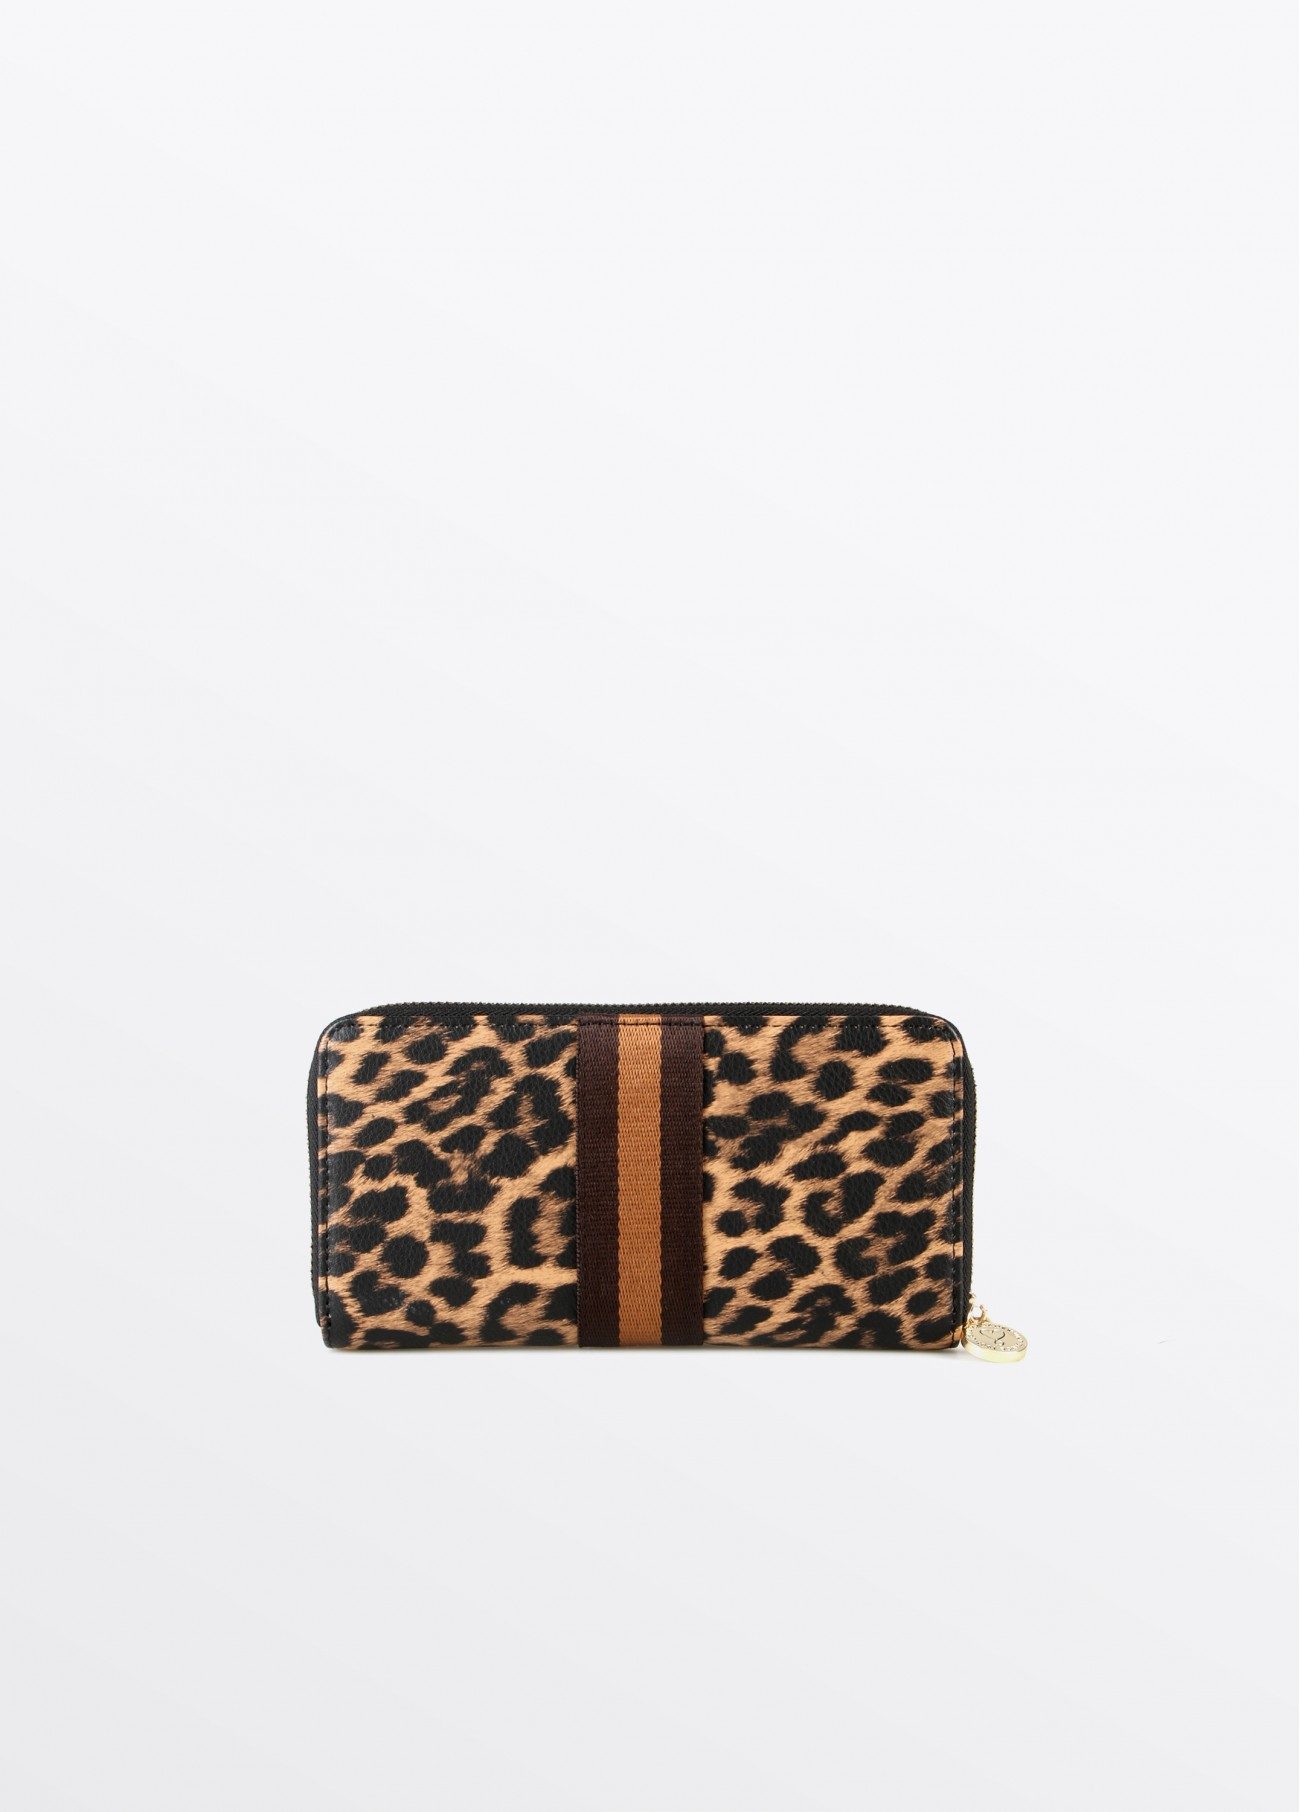 Monedero leopardo, estampado 2